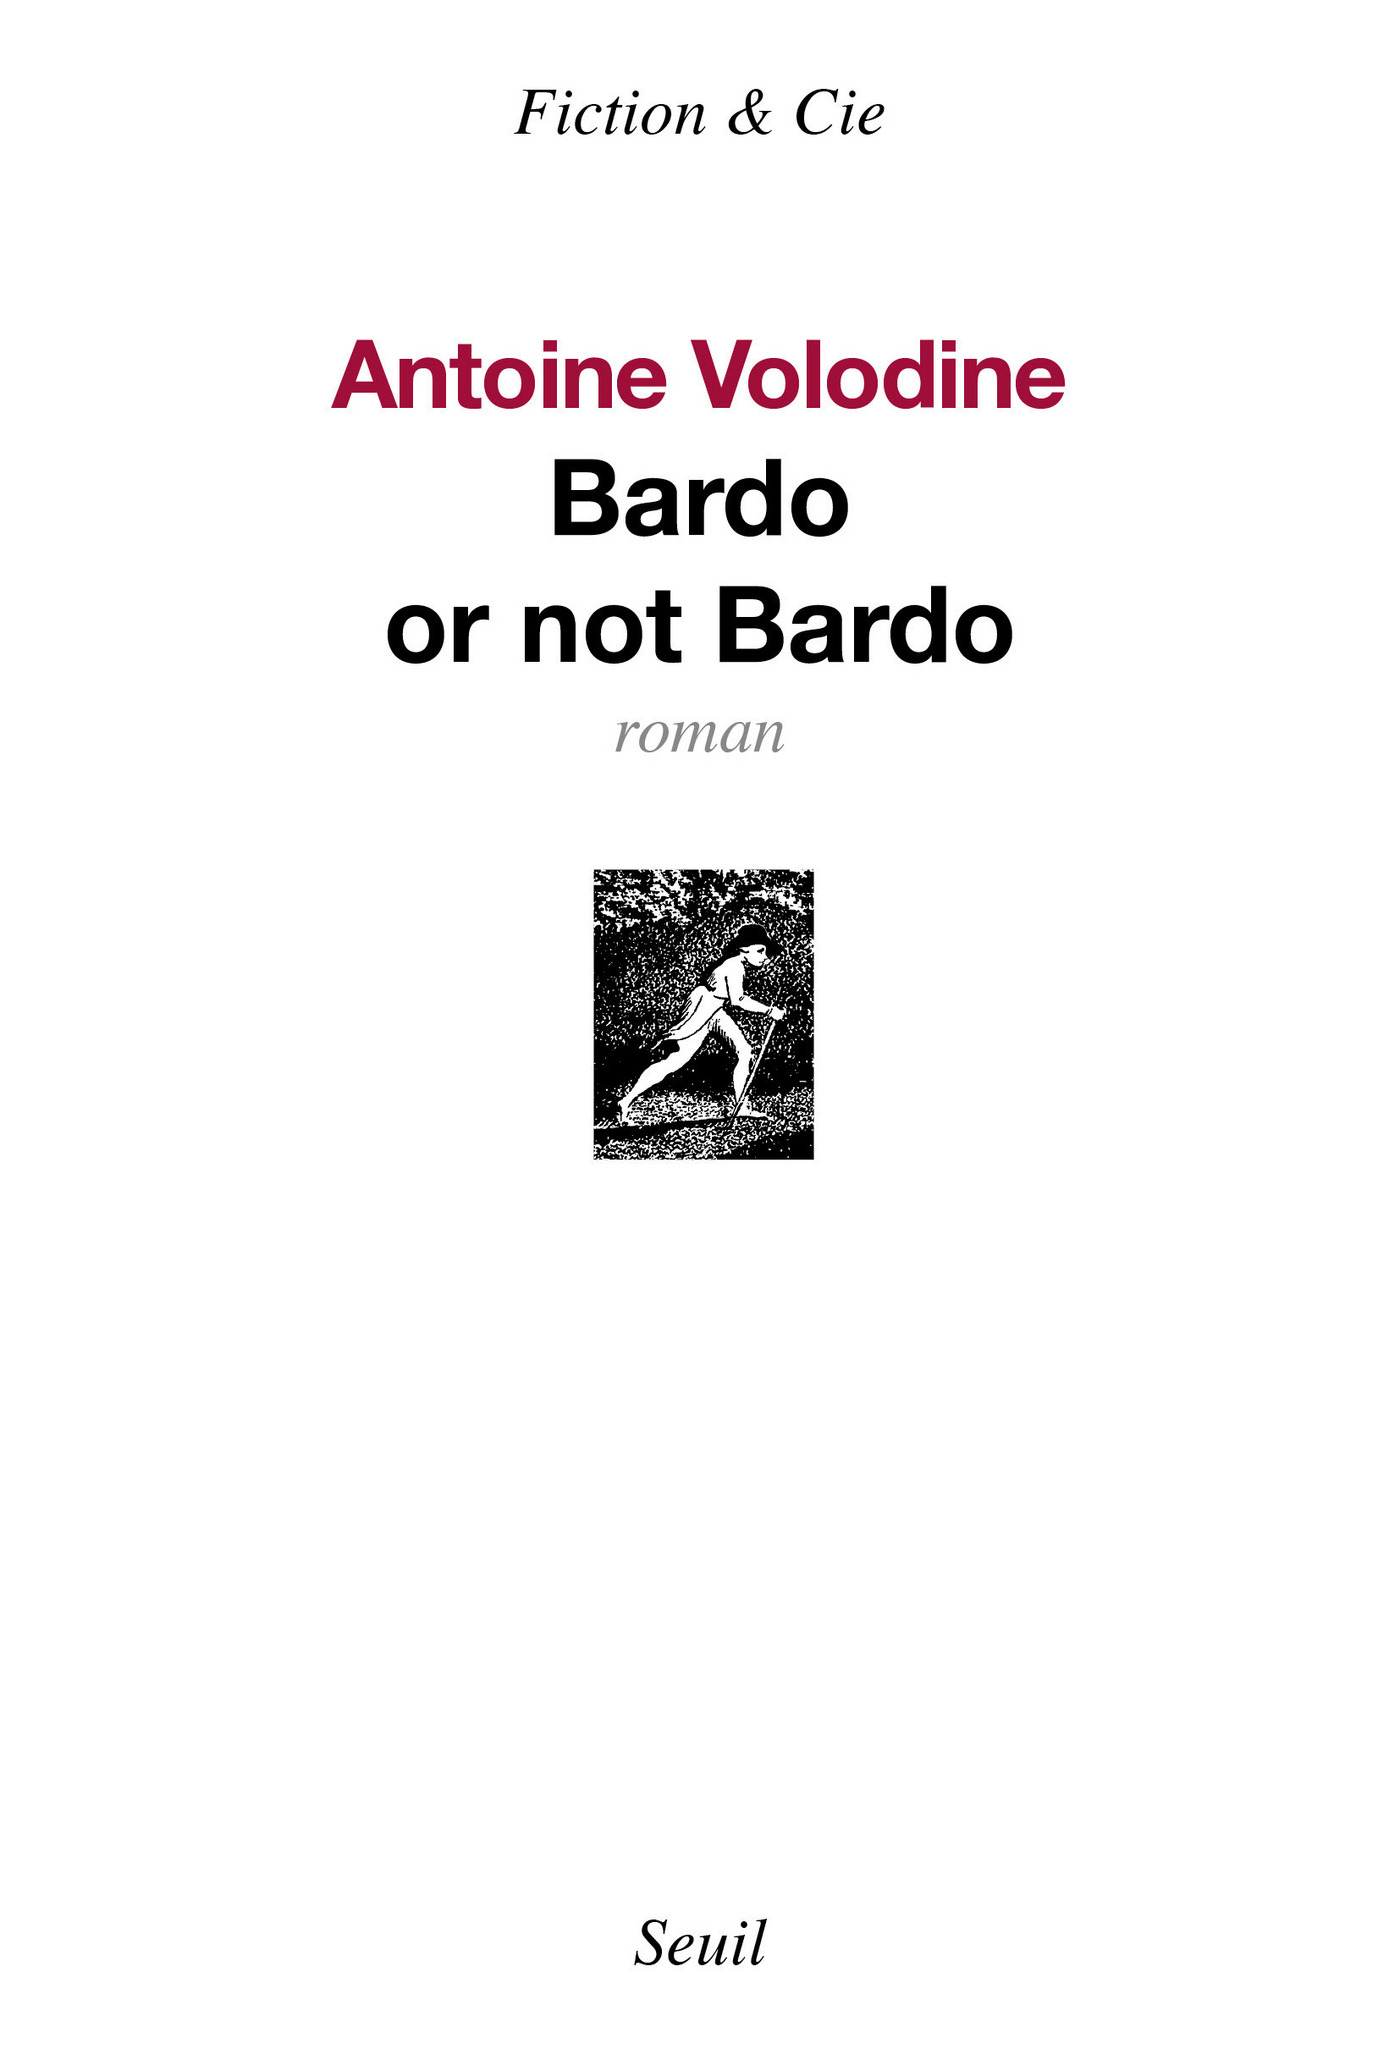 Bardo or not Bardo